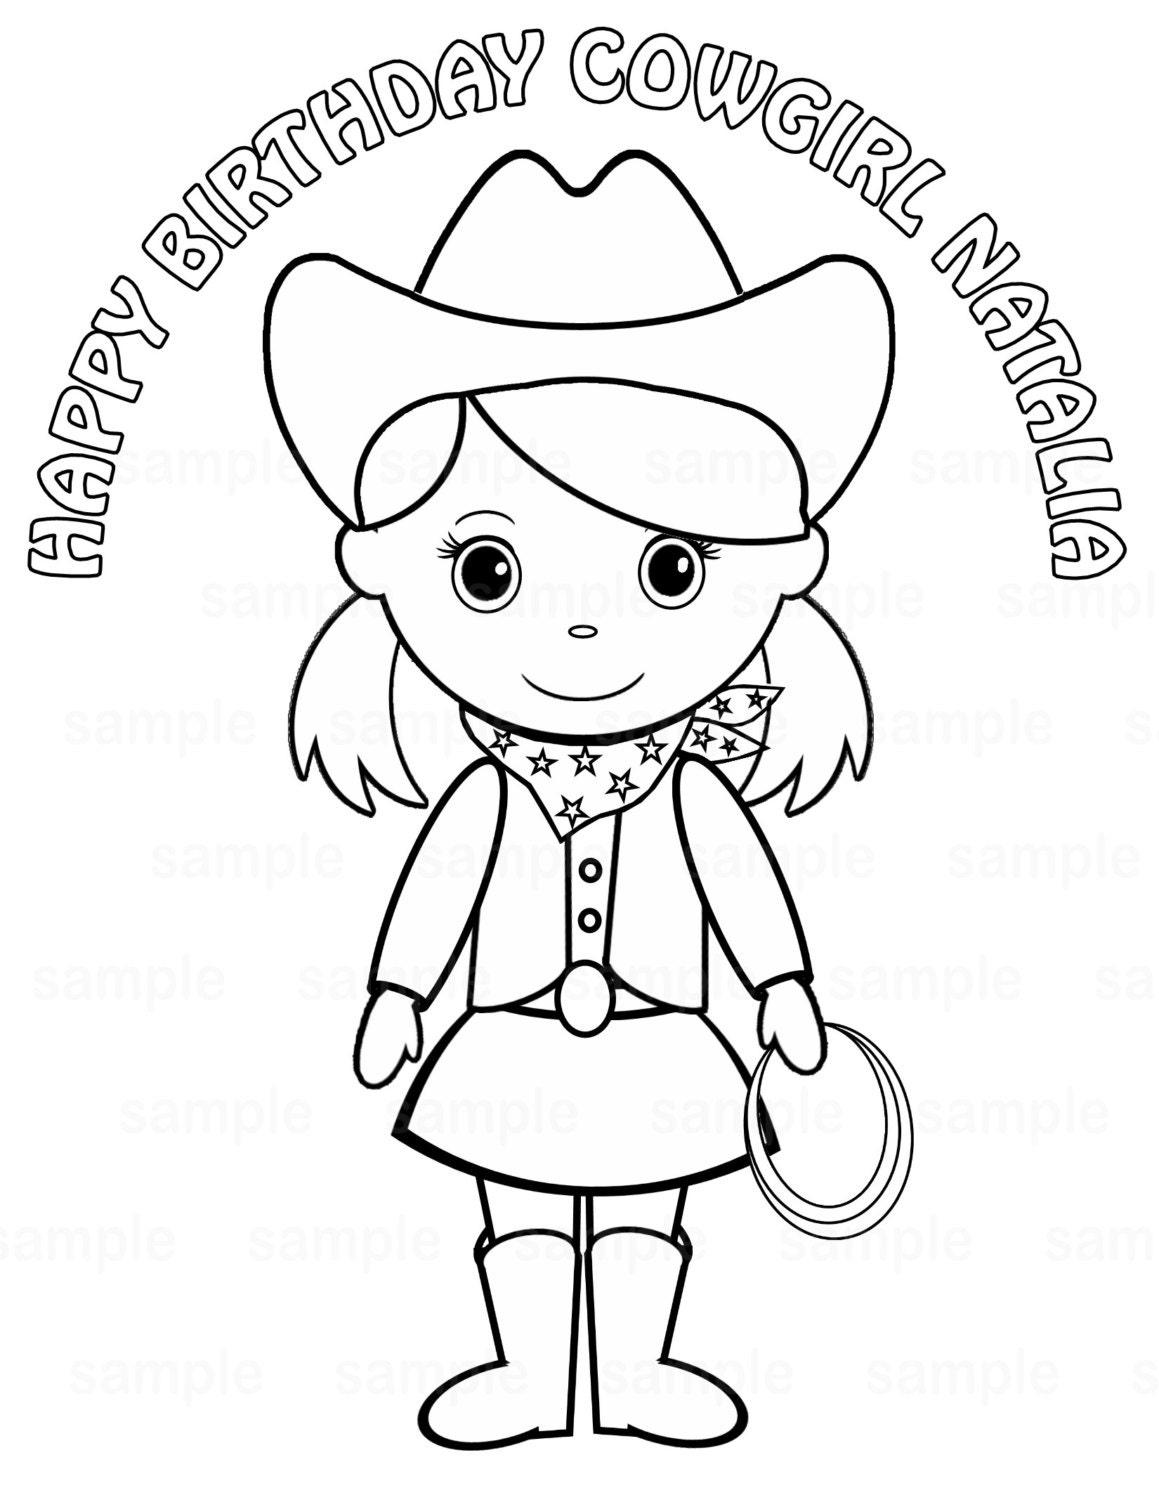 Personalized Printable Cowgirl Pigtails Birthday By